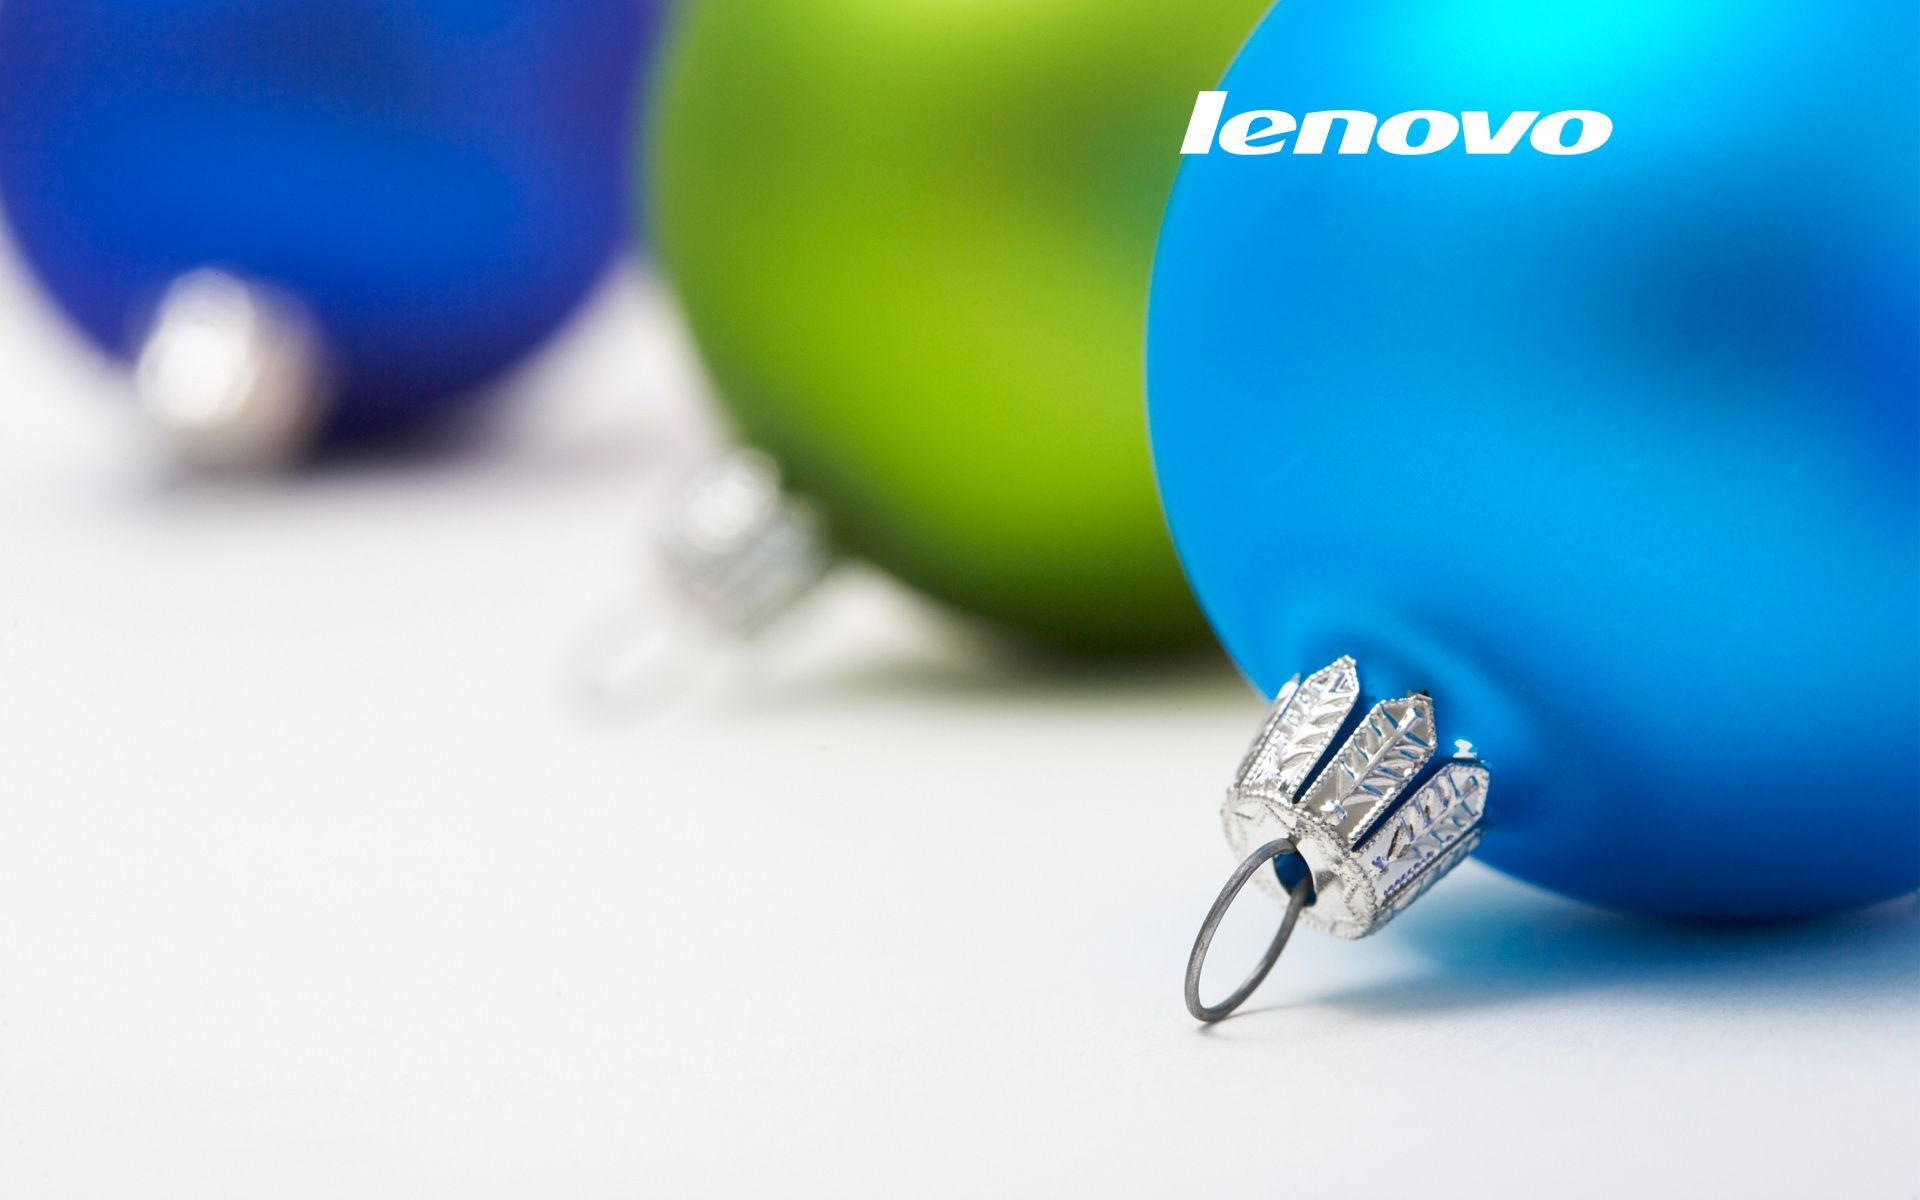 Lenovo HD Wallpaper Download